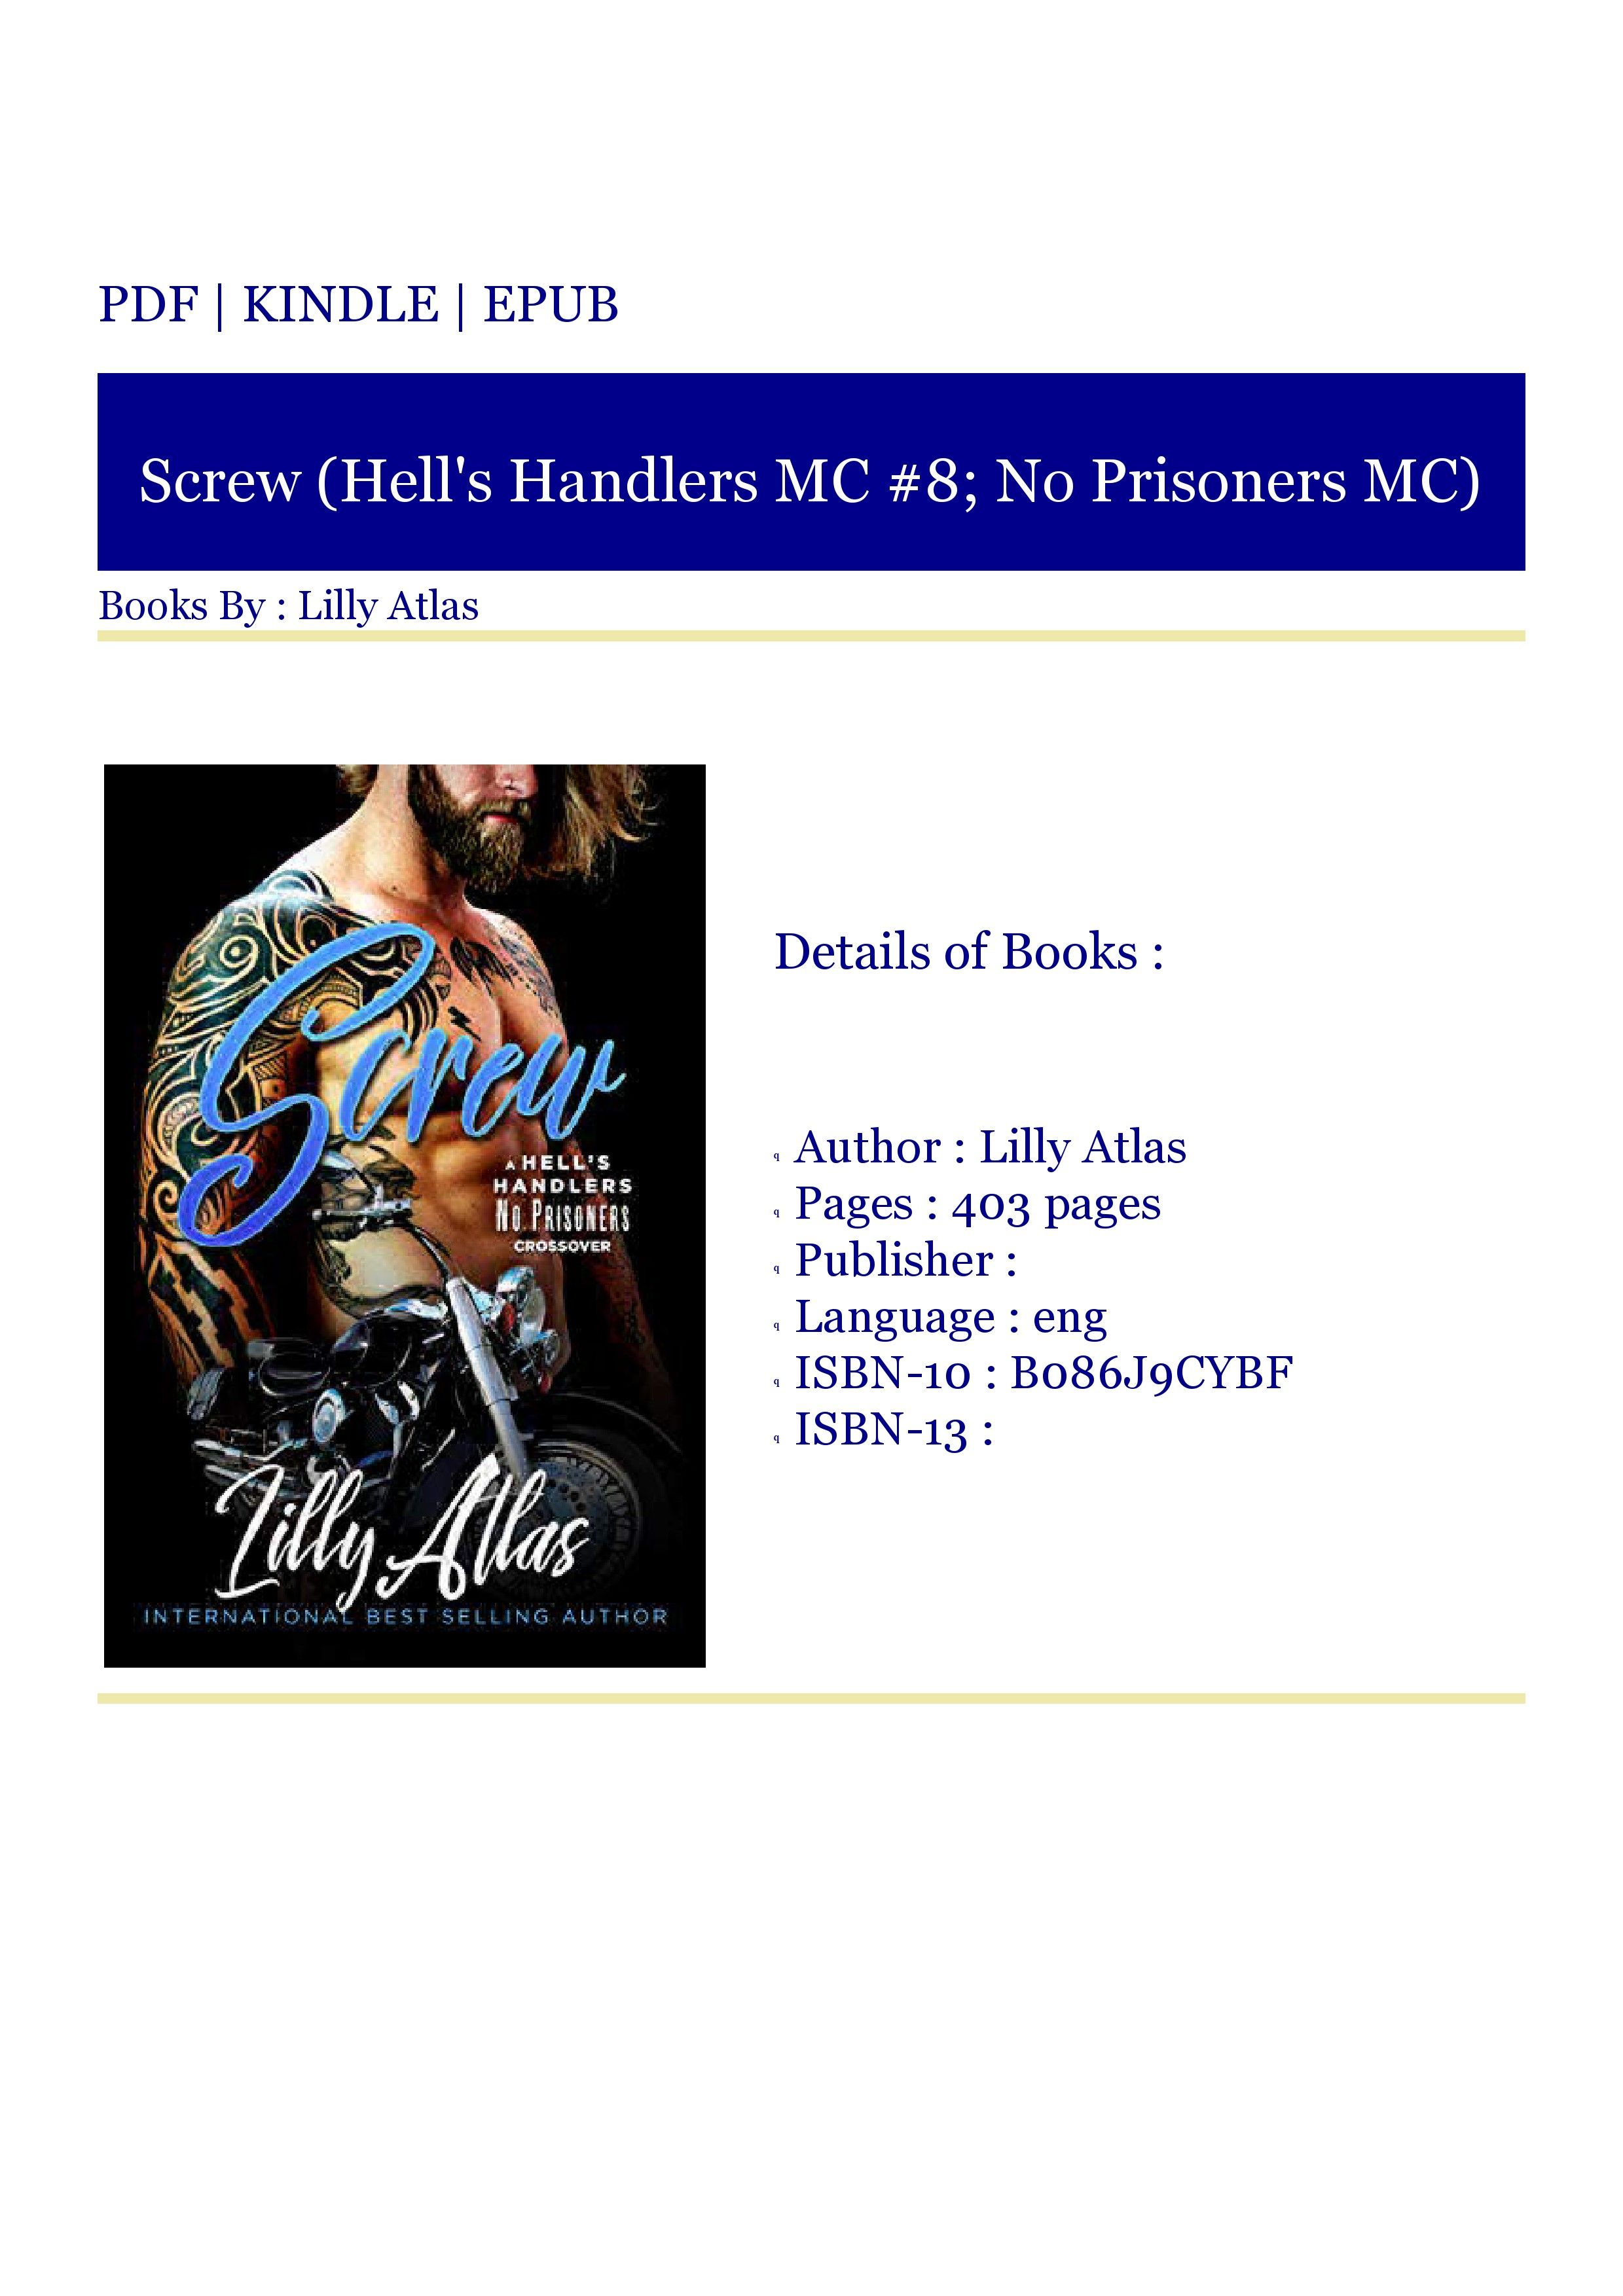 Pin on ebooksexclusion